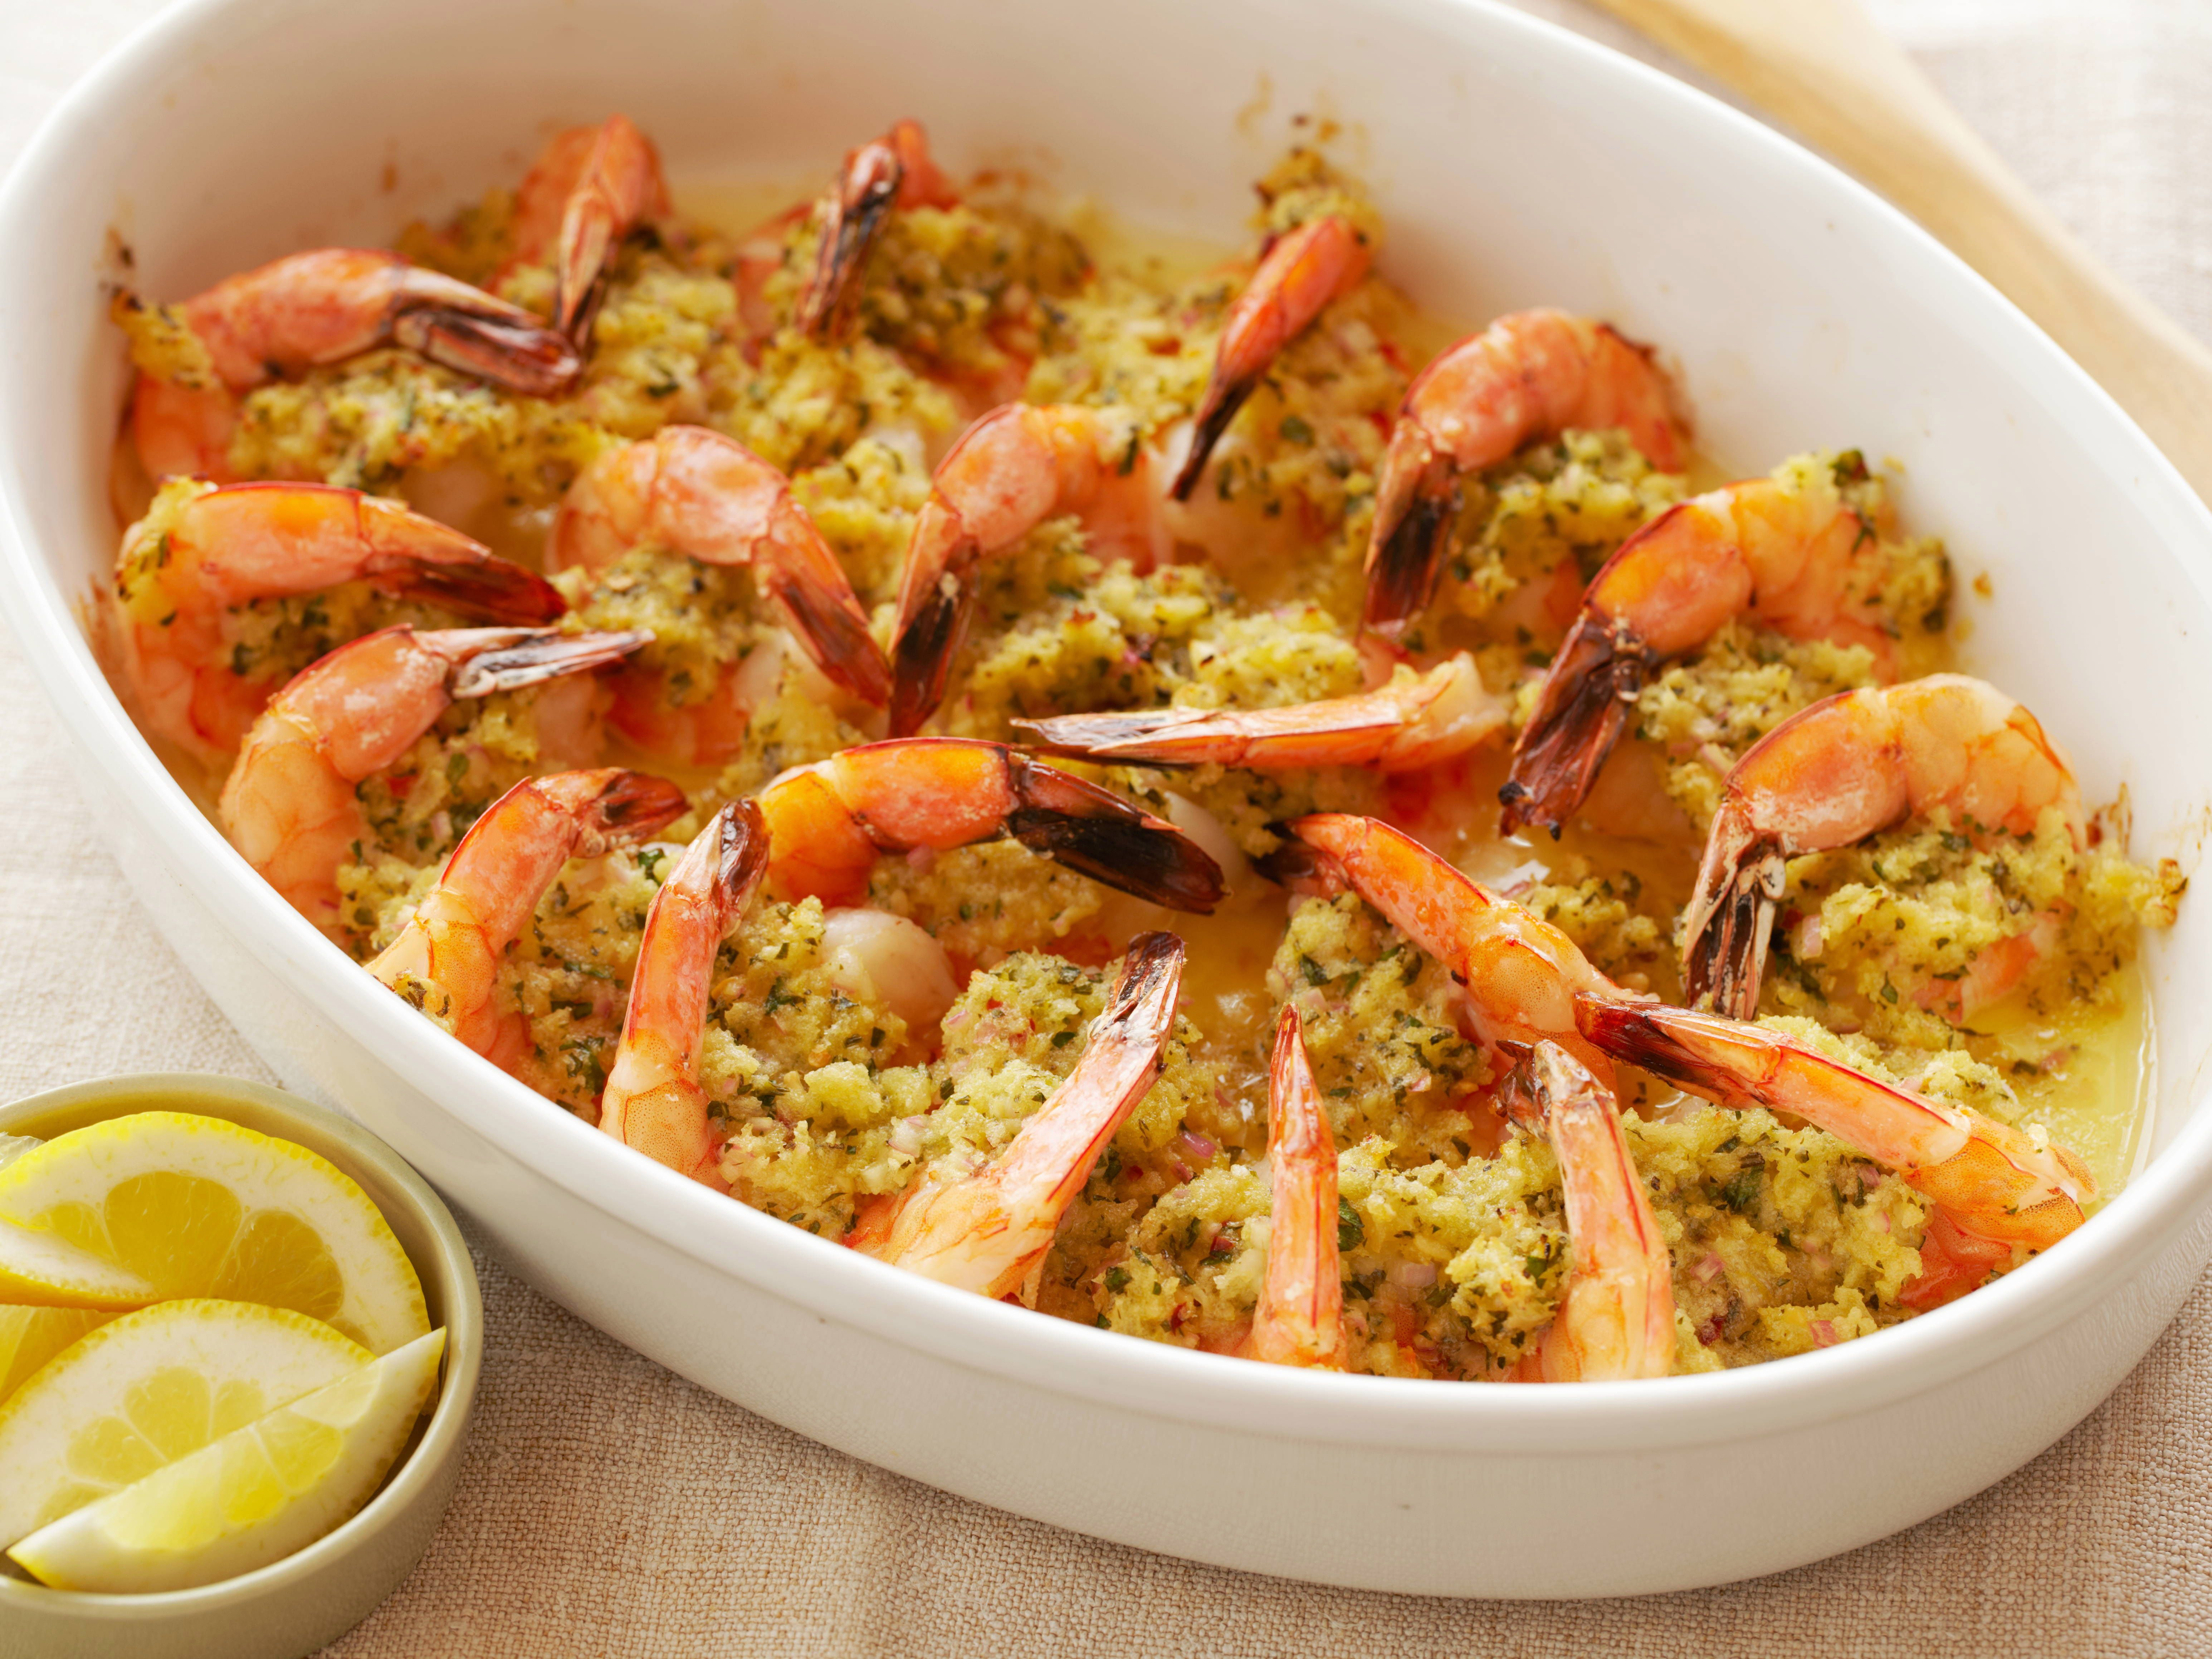 Baked shrimp scampi recipe baked shrimp scampi scampi recipe baked shrimp scampi recipe ina garten i made this for mimis birthday tea and it forumfinder Image collections